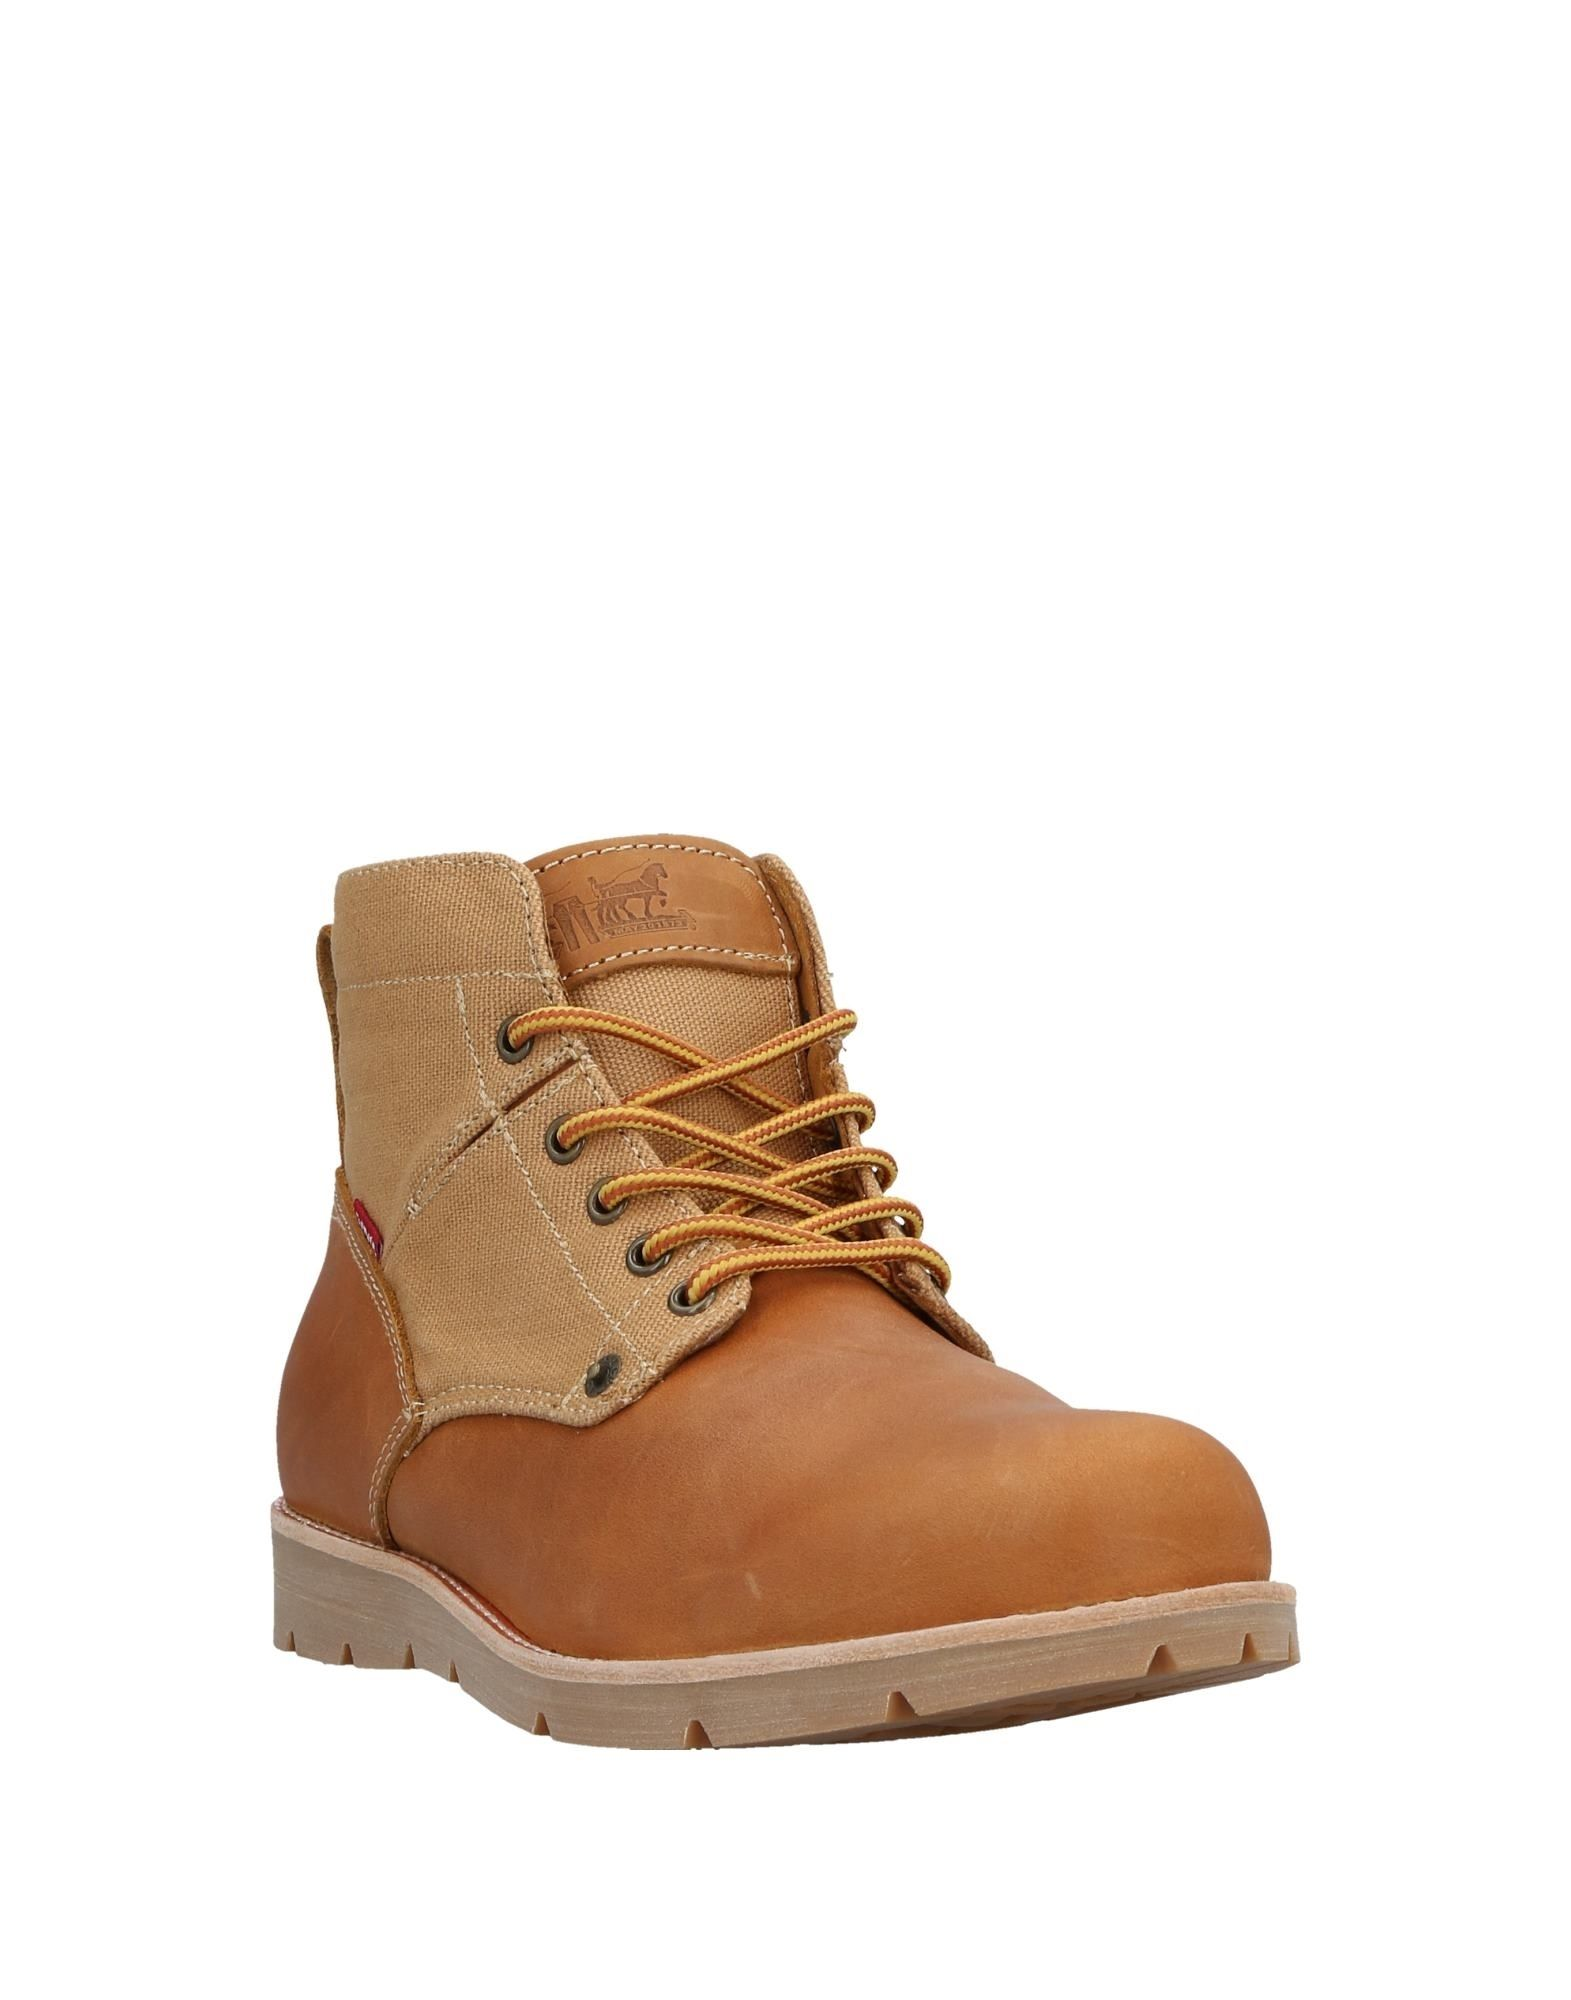 Levi's Levi's Levi's Red Tab Boots - Men Levi's Red Tab Boots online on  Canada - 11534250TM d3a863